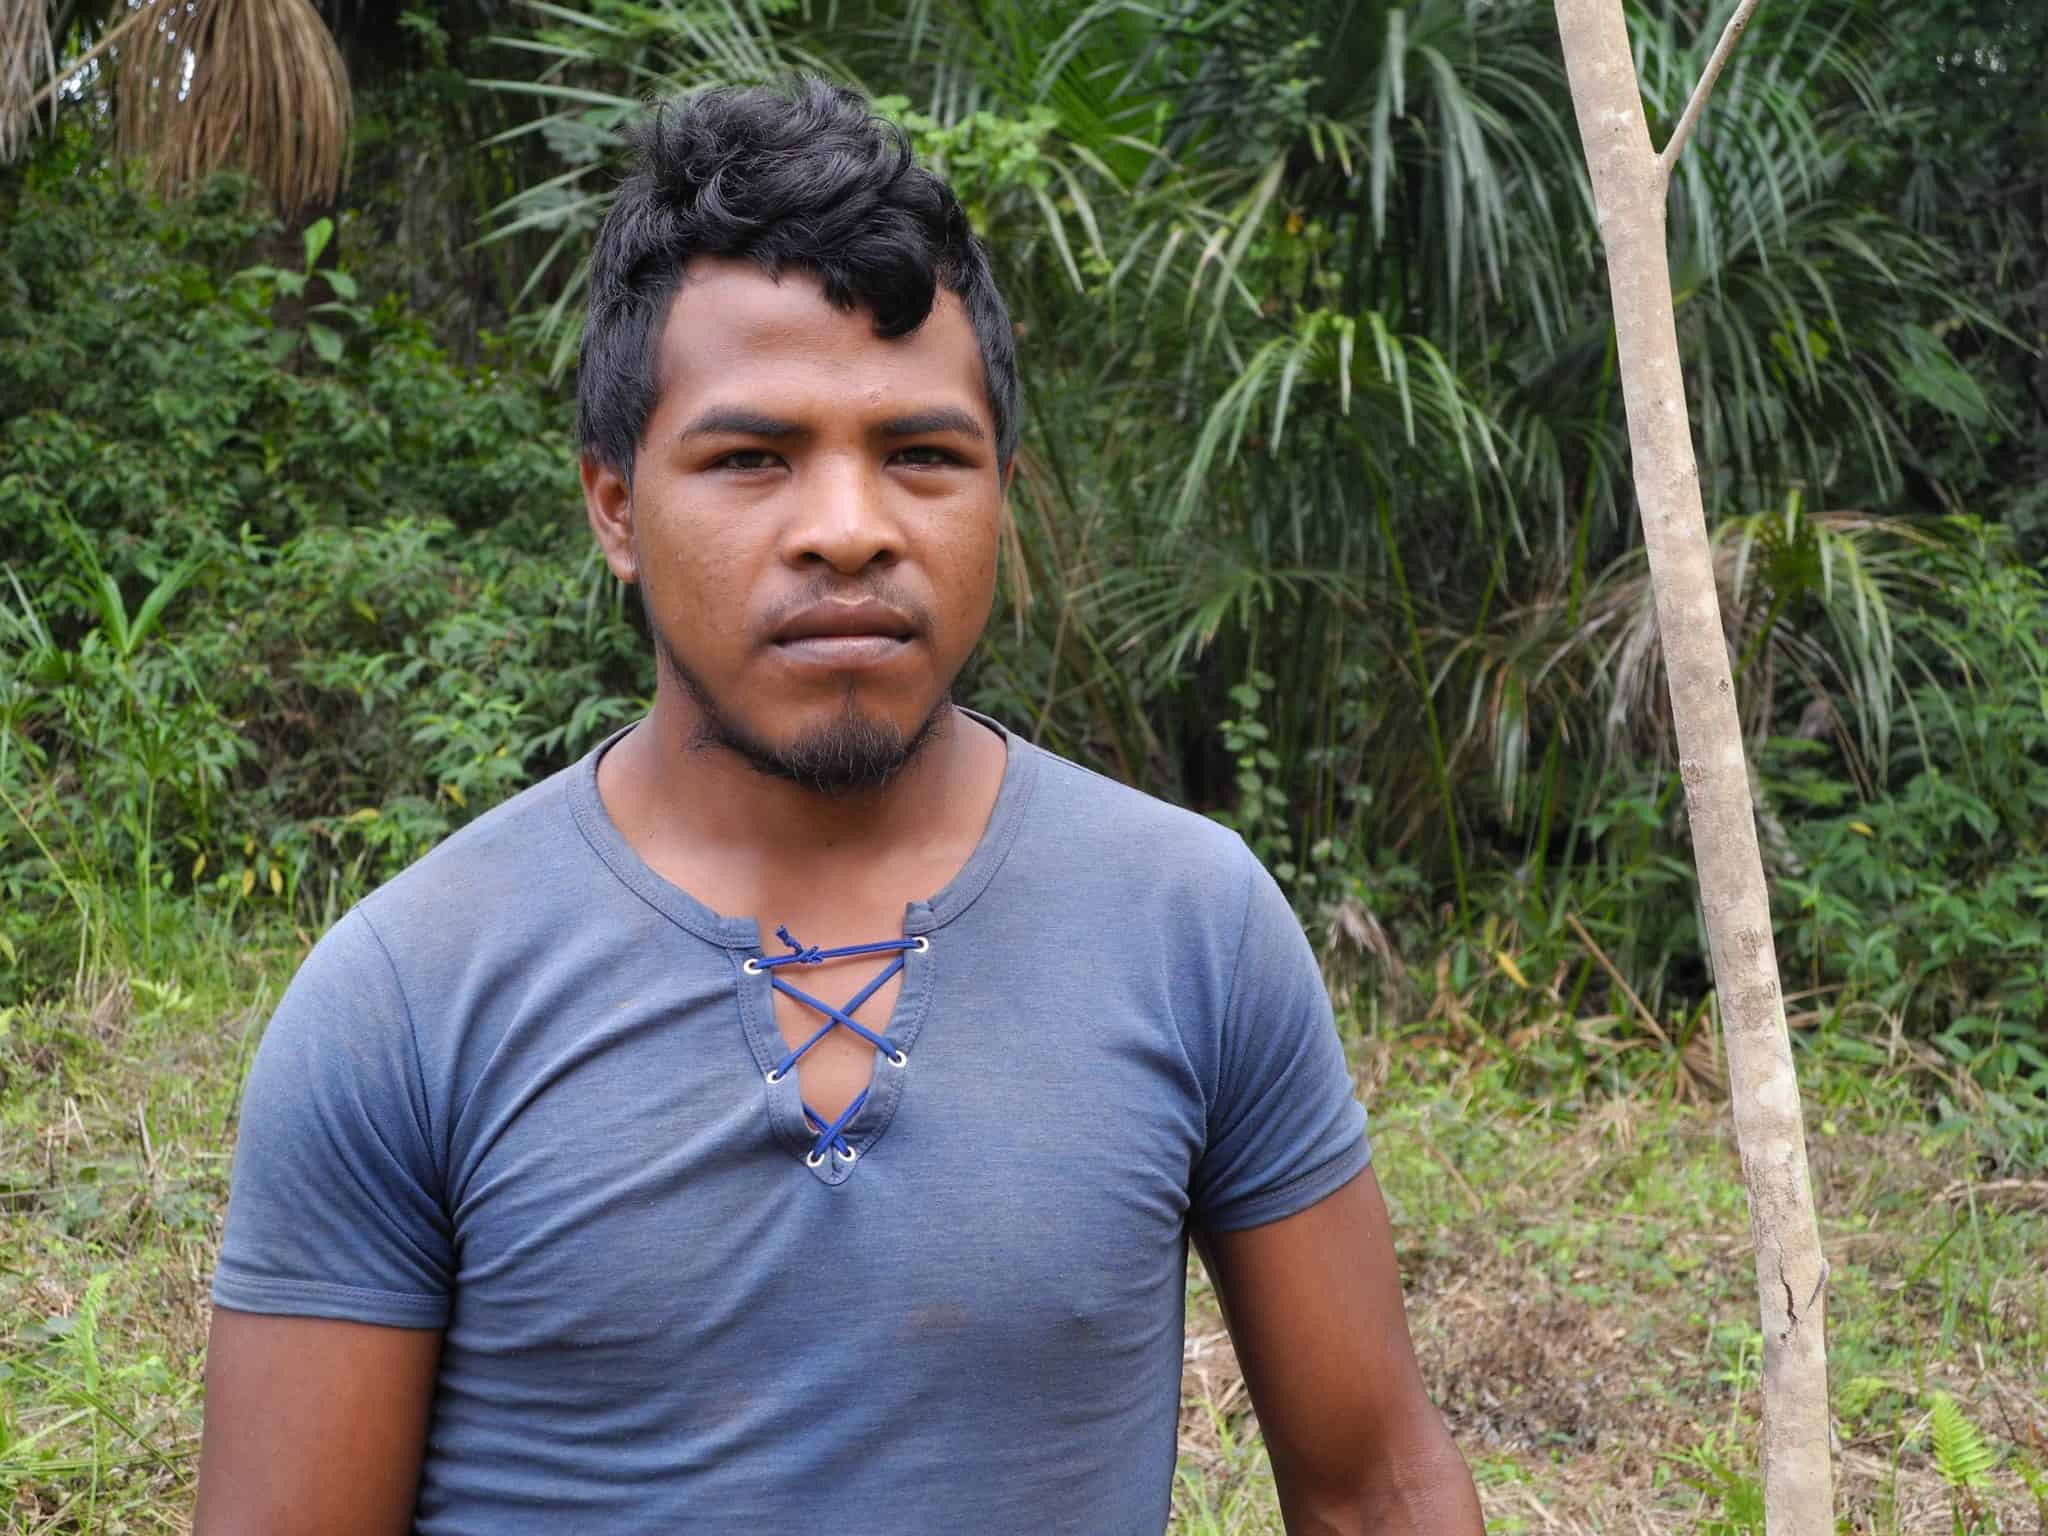 Paulo Paulino Guajajara, known as Kwahu, was shot dead following an ambush by loggers. He was a Guardian of the Amazon, a group of indigenous men from the Guajajara tribe who protect their territory from loggers.